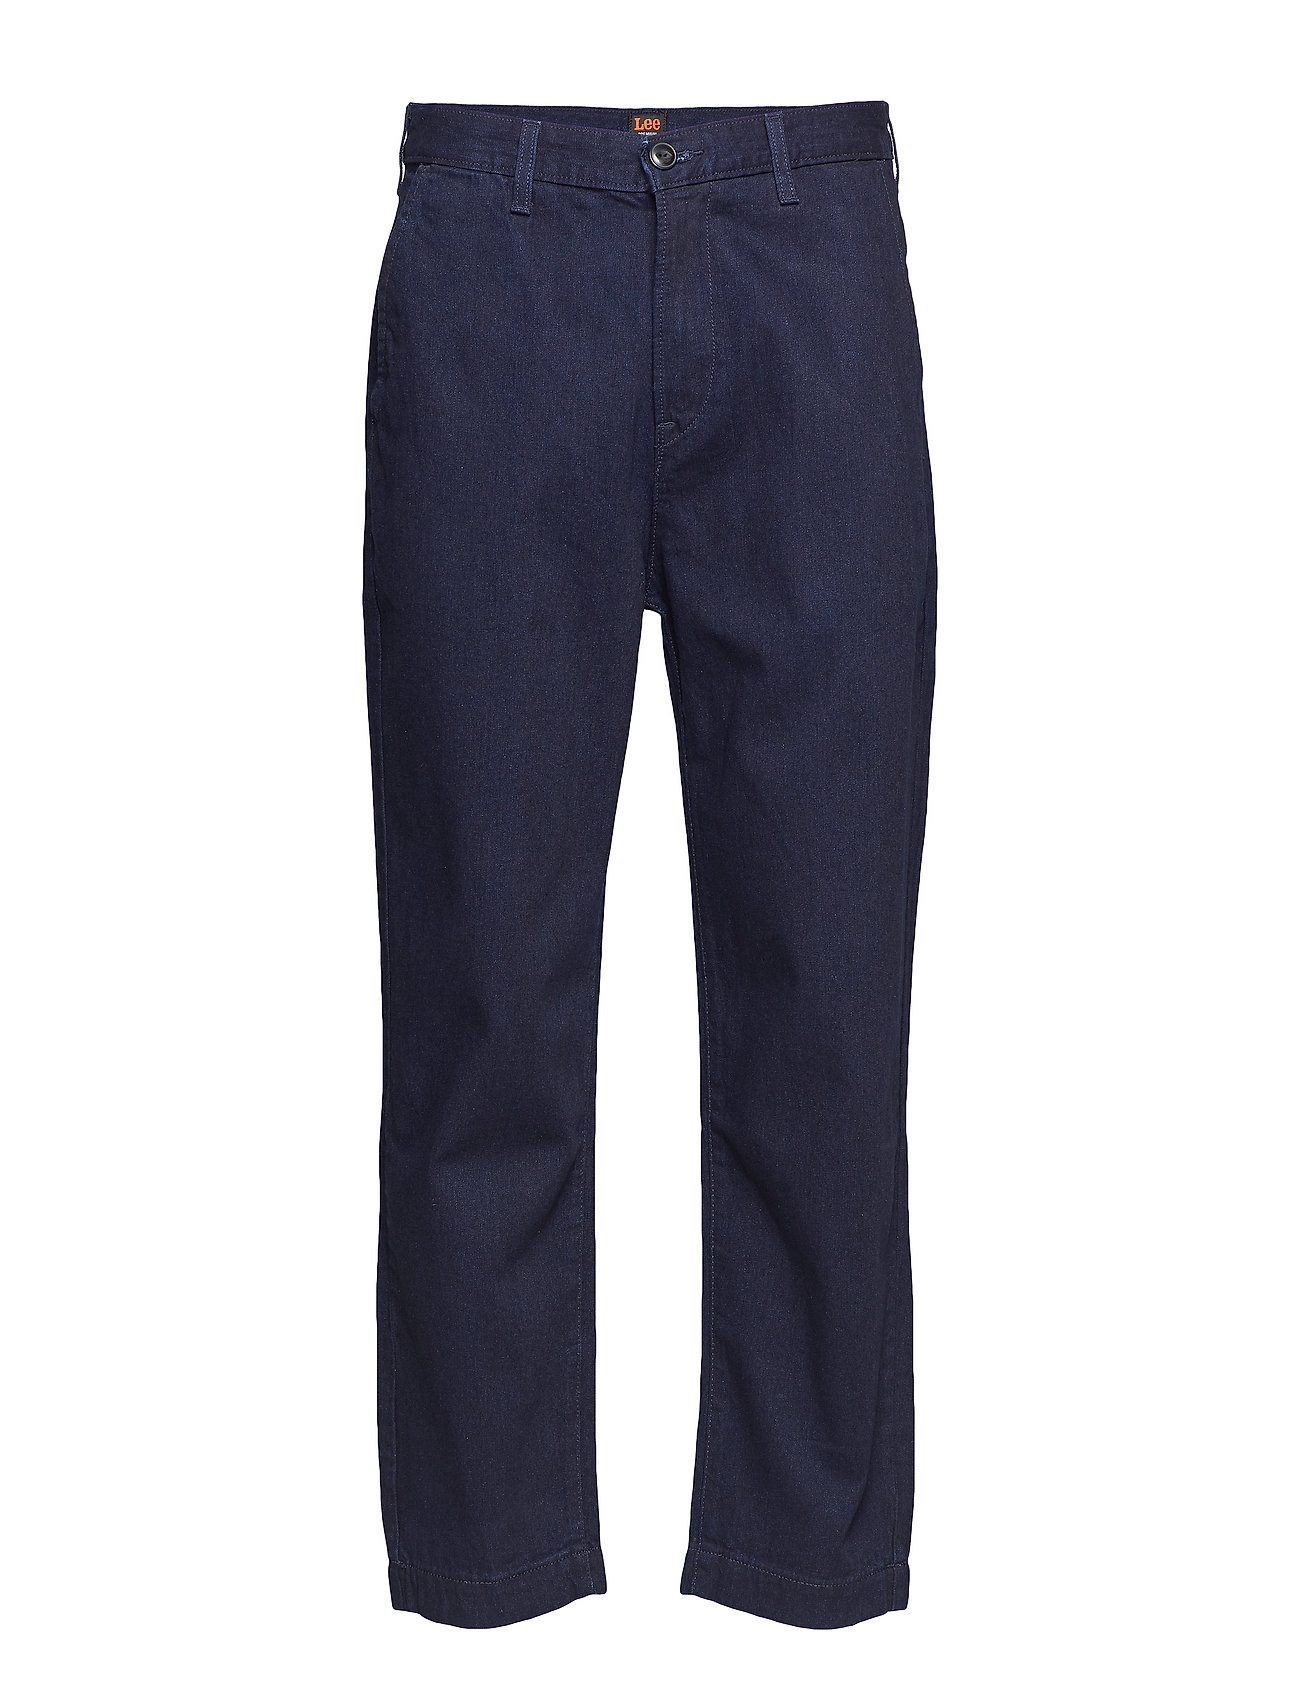 Lee Jeans Relaxed chino - POWER BLUE